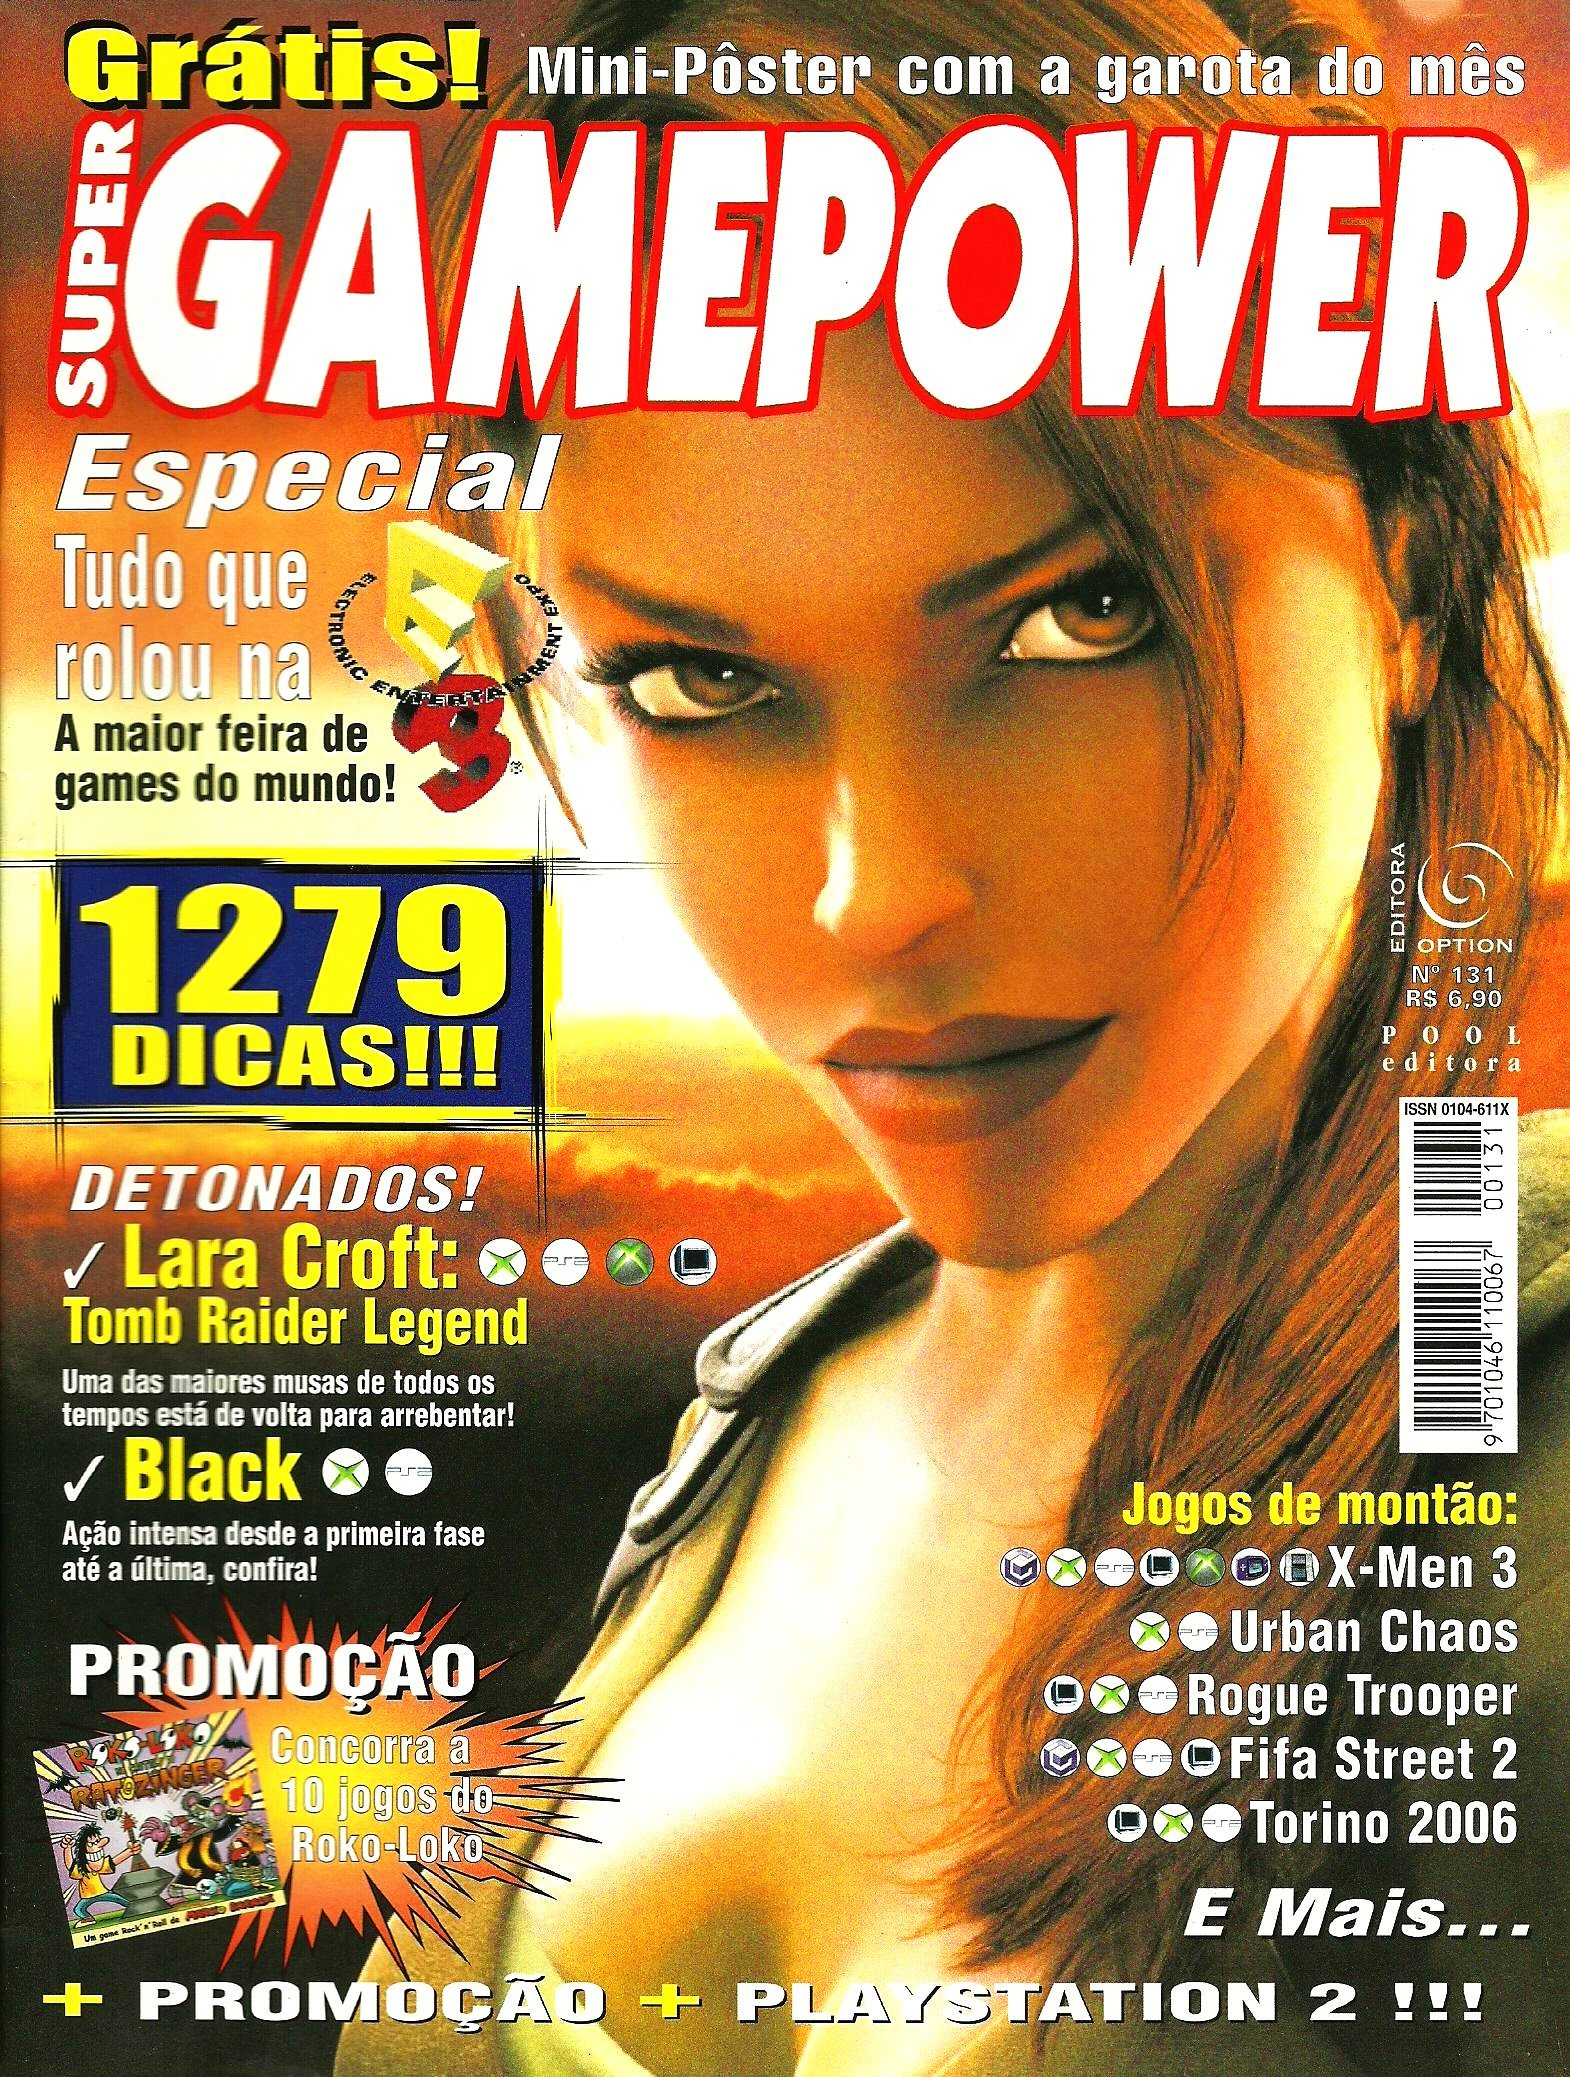 SuperGamePower Issue 131 (June 2006)